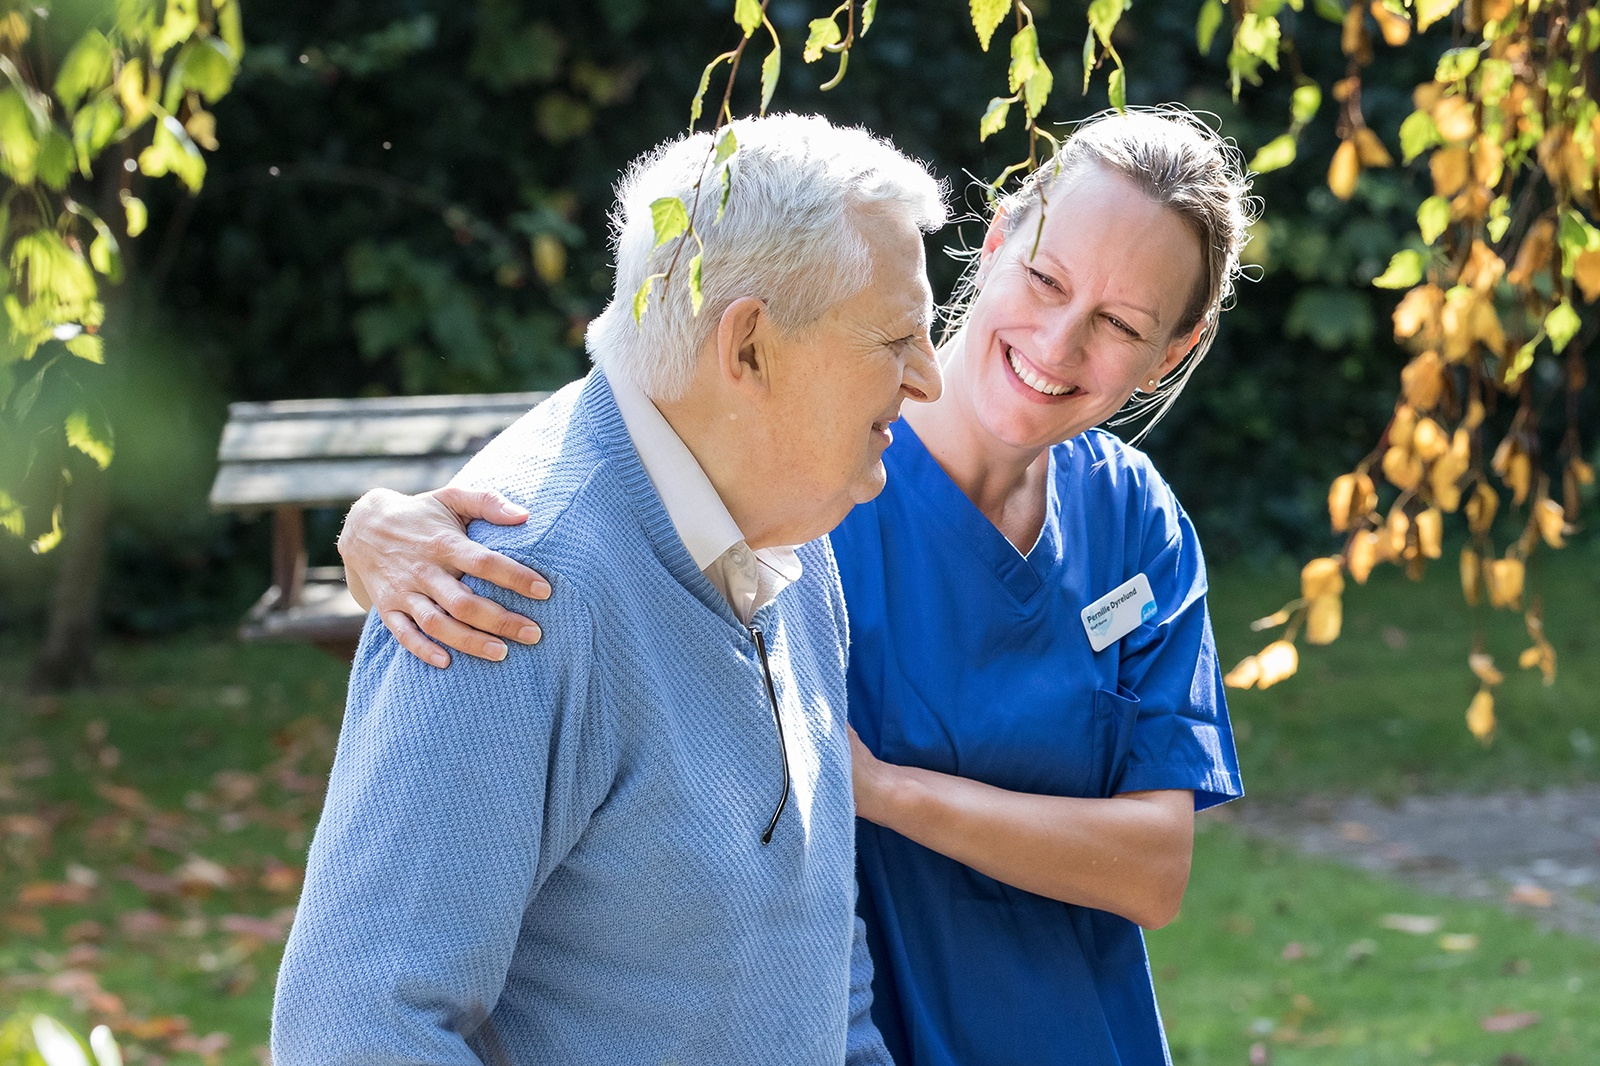 Image of a Sue Ryder nurse with her arm around a patient, both smiling in conversation